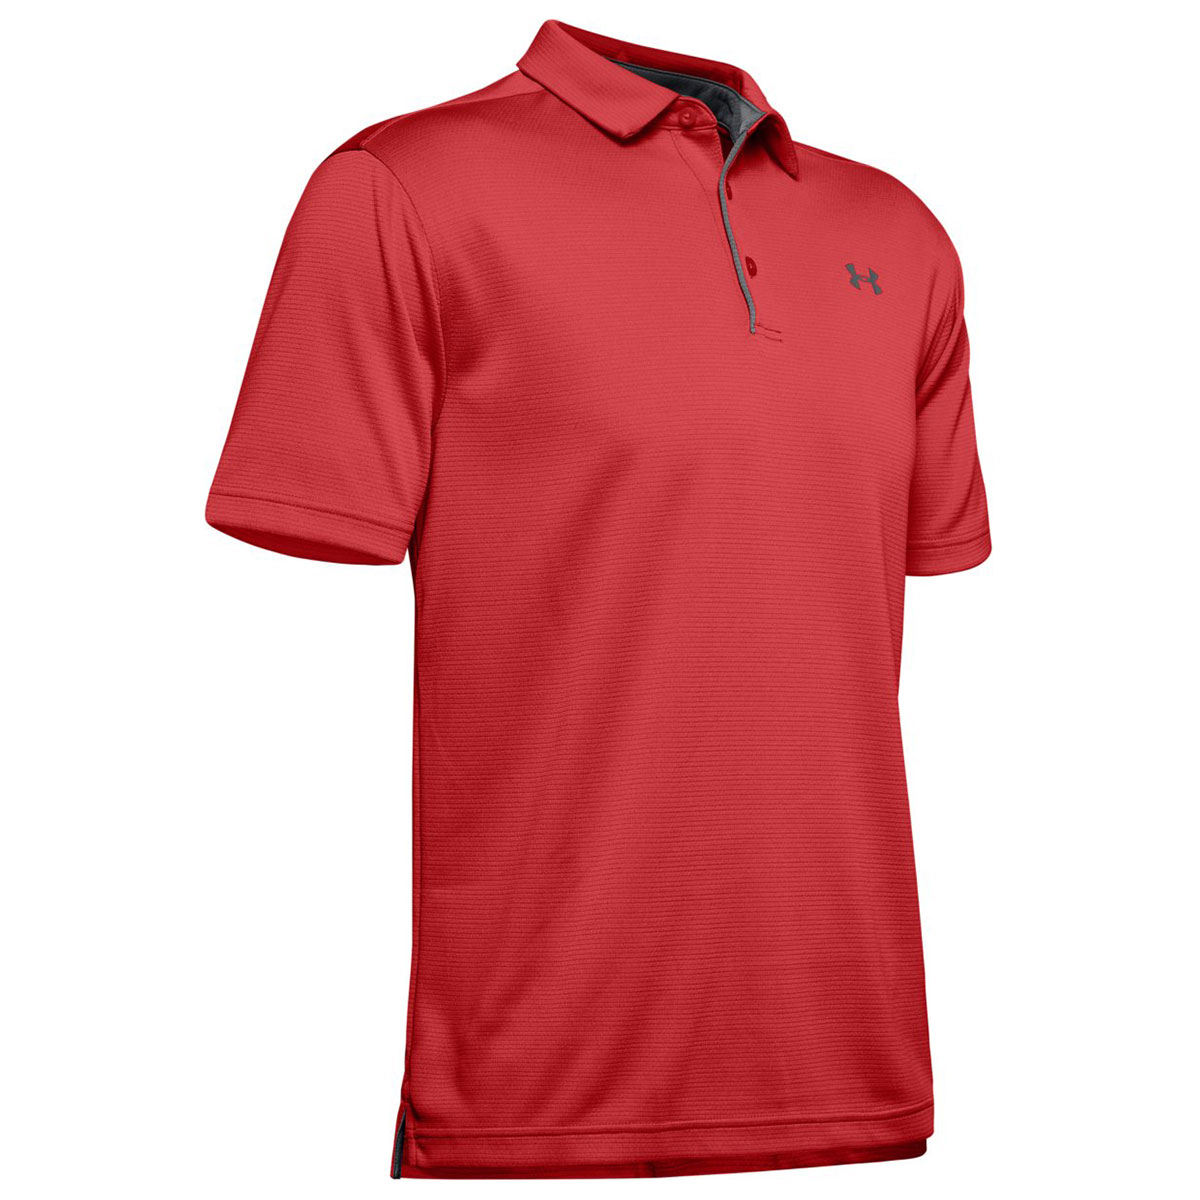 Under-Armour-Mens-Golf-Tech-Wicking-Textured-Soft-Light-Polo-Shirt thumbnail 52